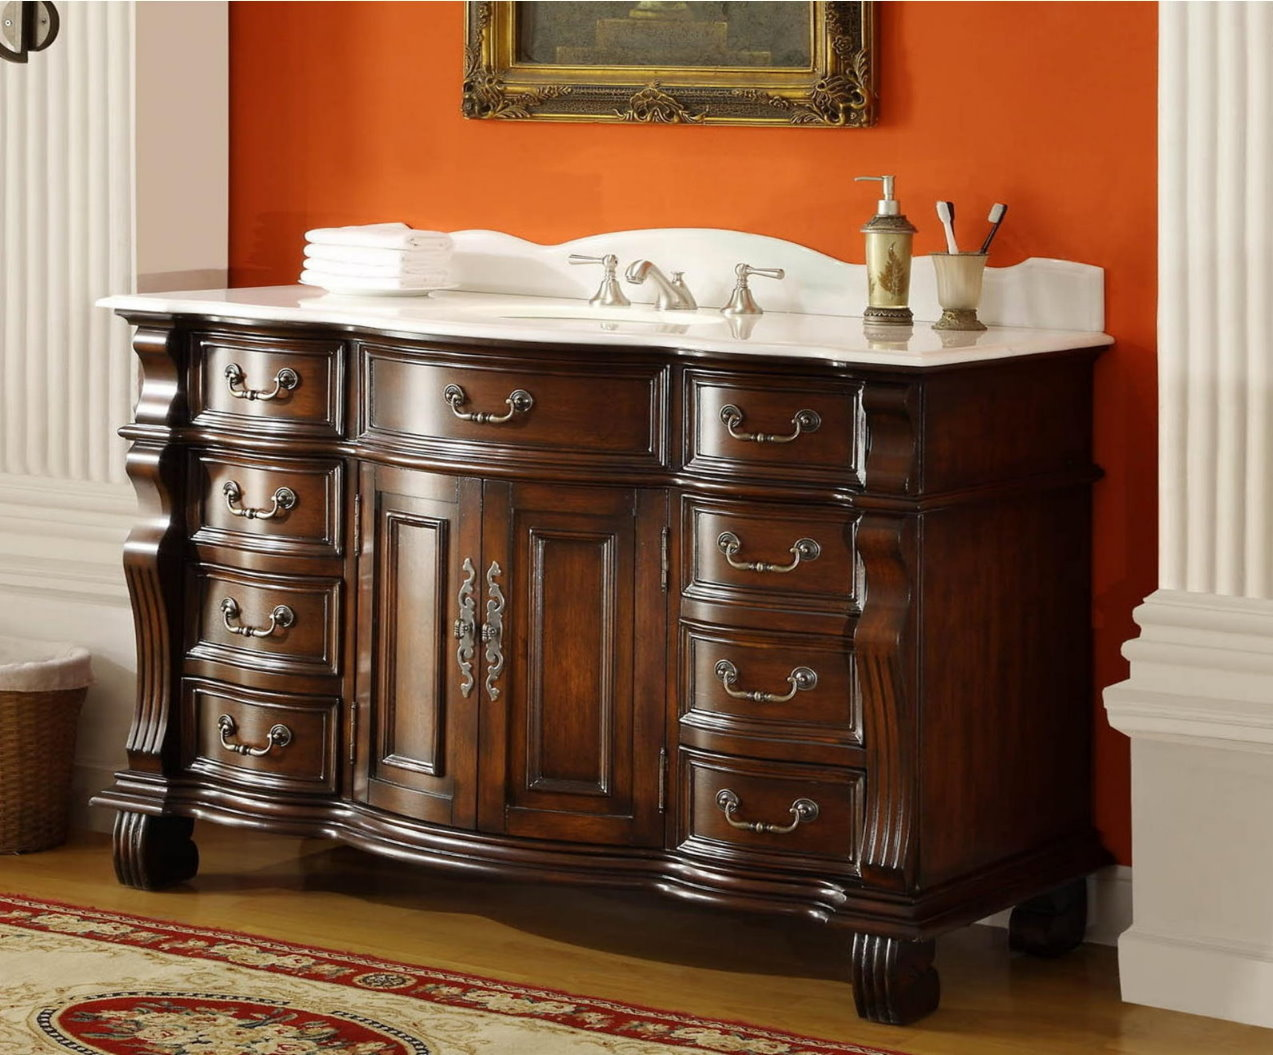 60 inch single sink bathroom vanity 8 drawers light cherry color 60